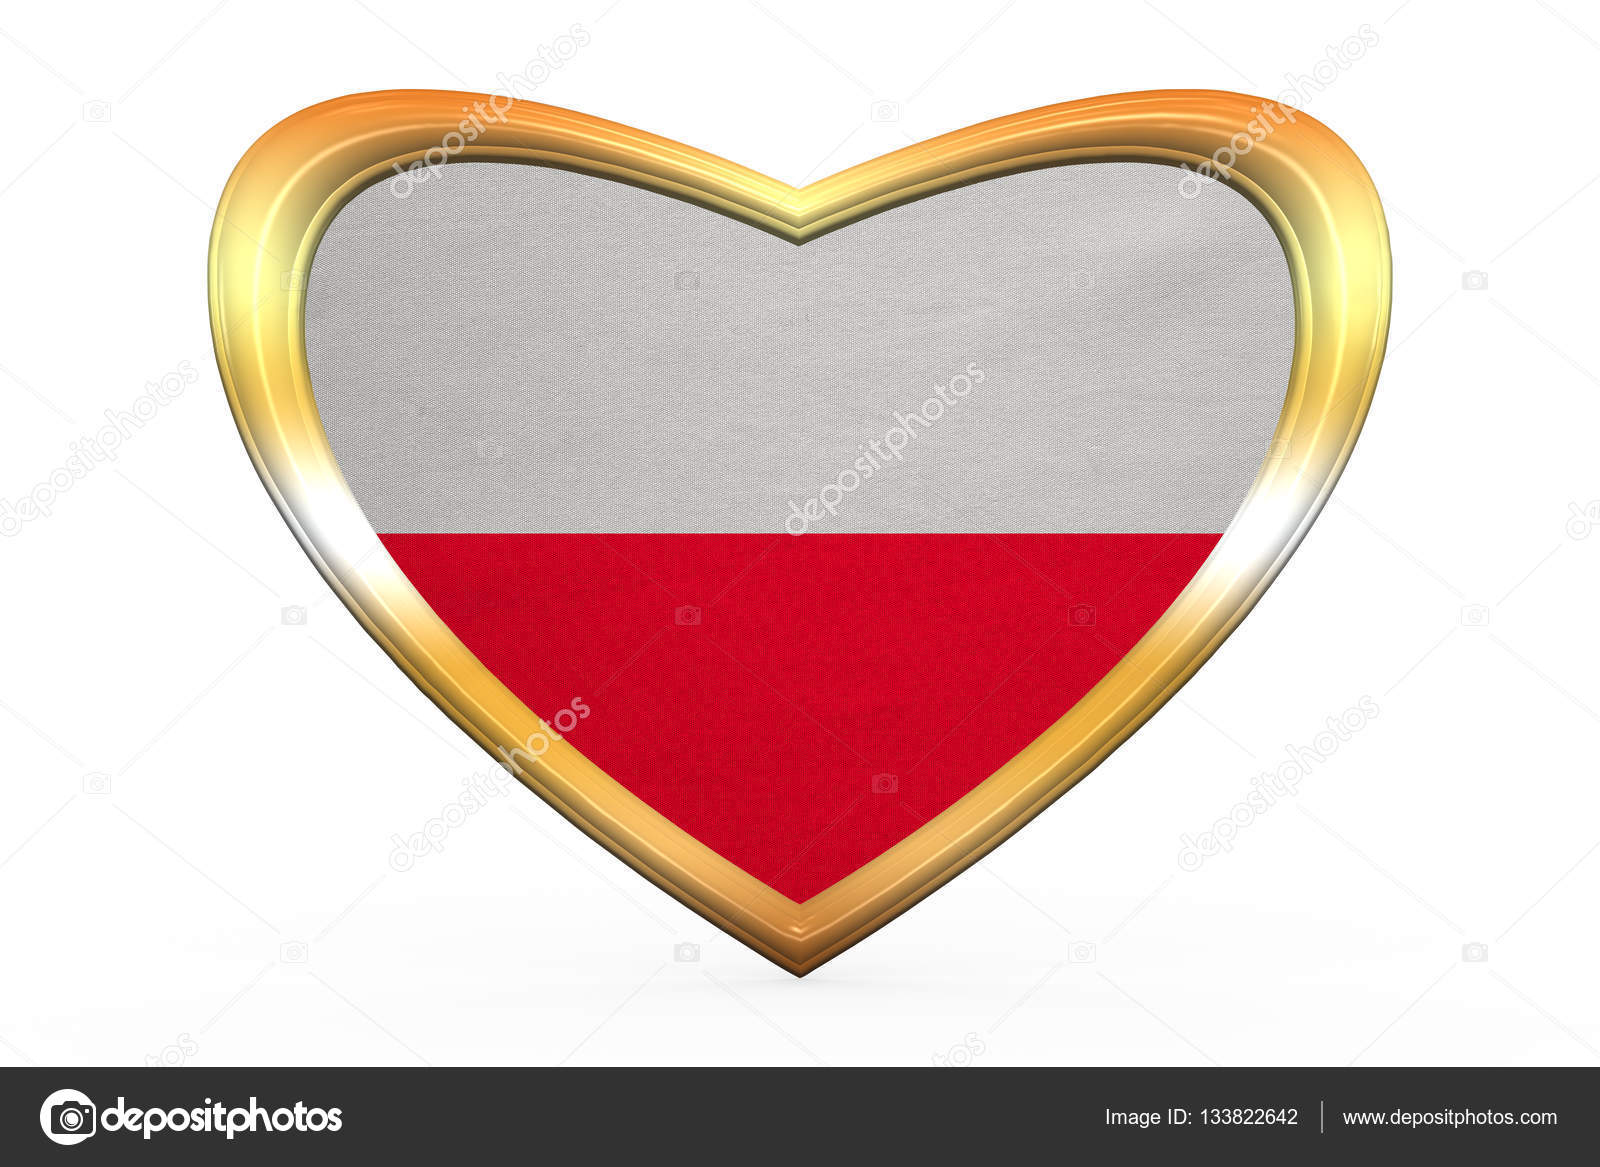 Flag of poland in heart shape golden frame stock photo polish national official flag patriotic symbol banner element background correct colors flag of poland in heart shape isolated on white background biocorpaavc